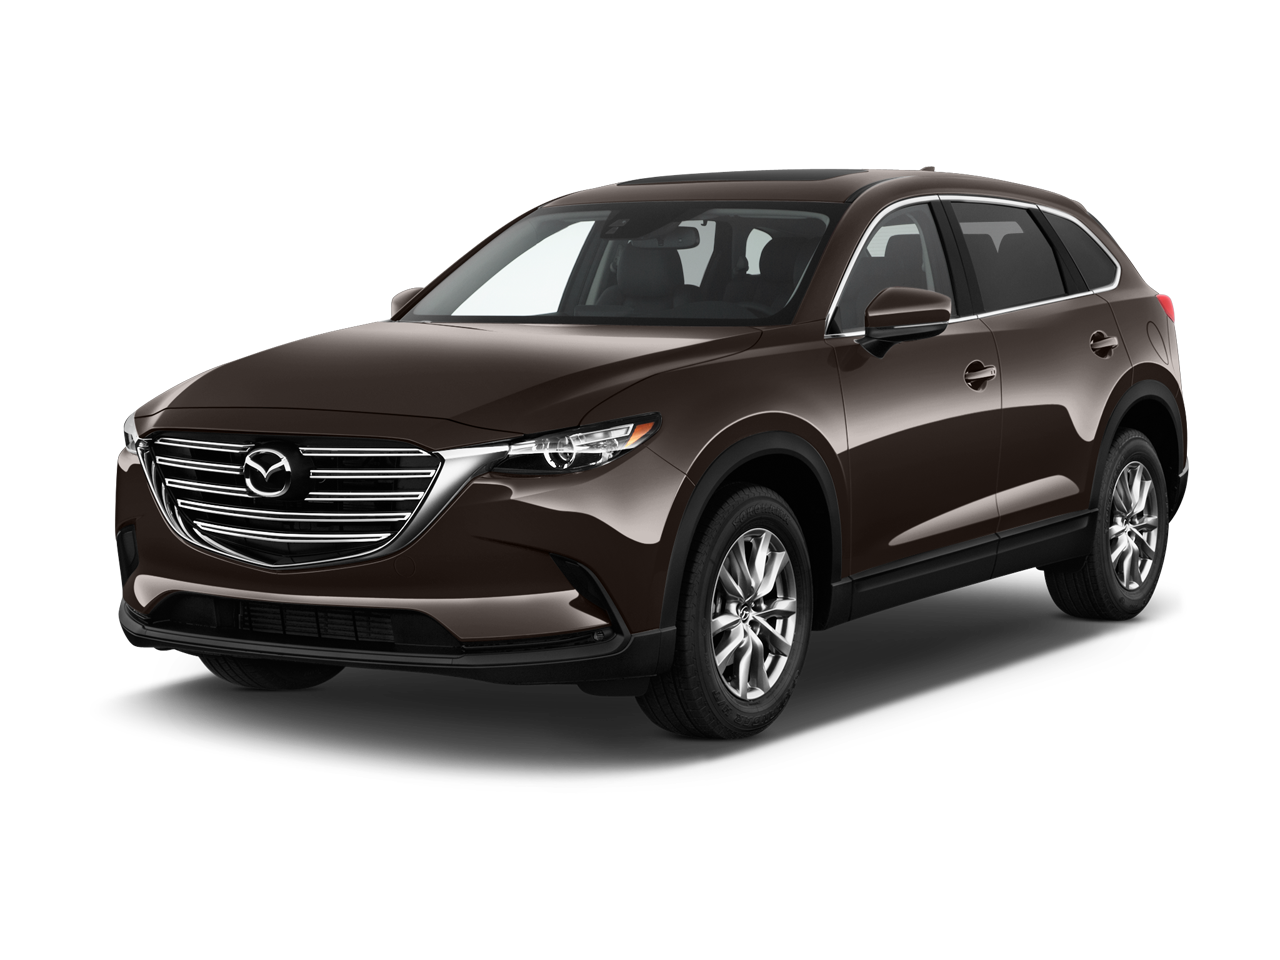 new 2018 mazda cx 9 grand touring spokane wa foothills. Black Bedroom Furniture Sets. Home Design Ideas